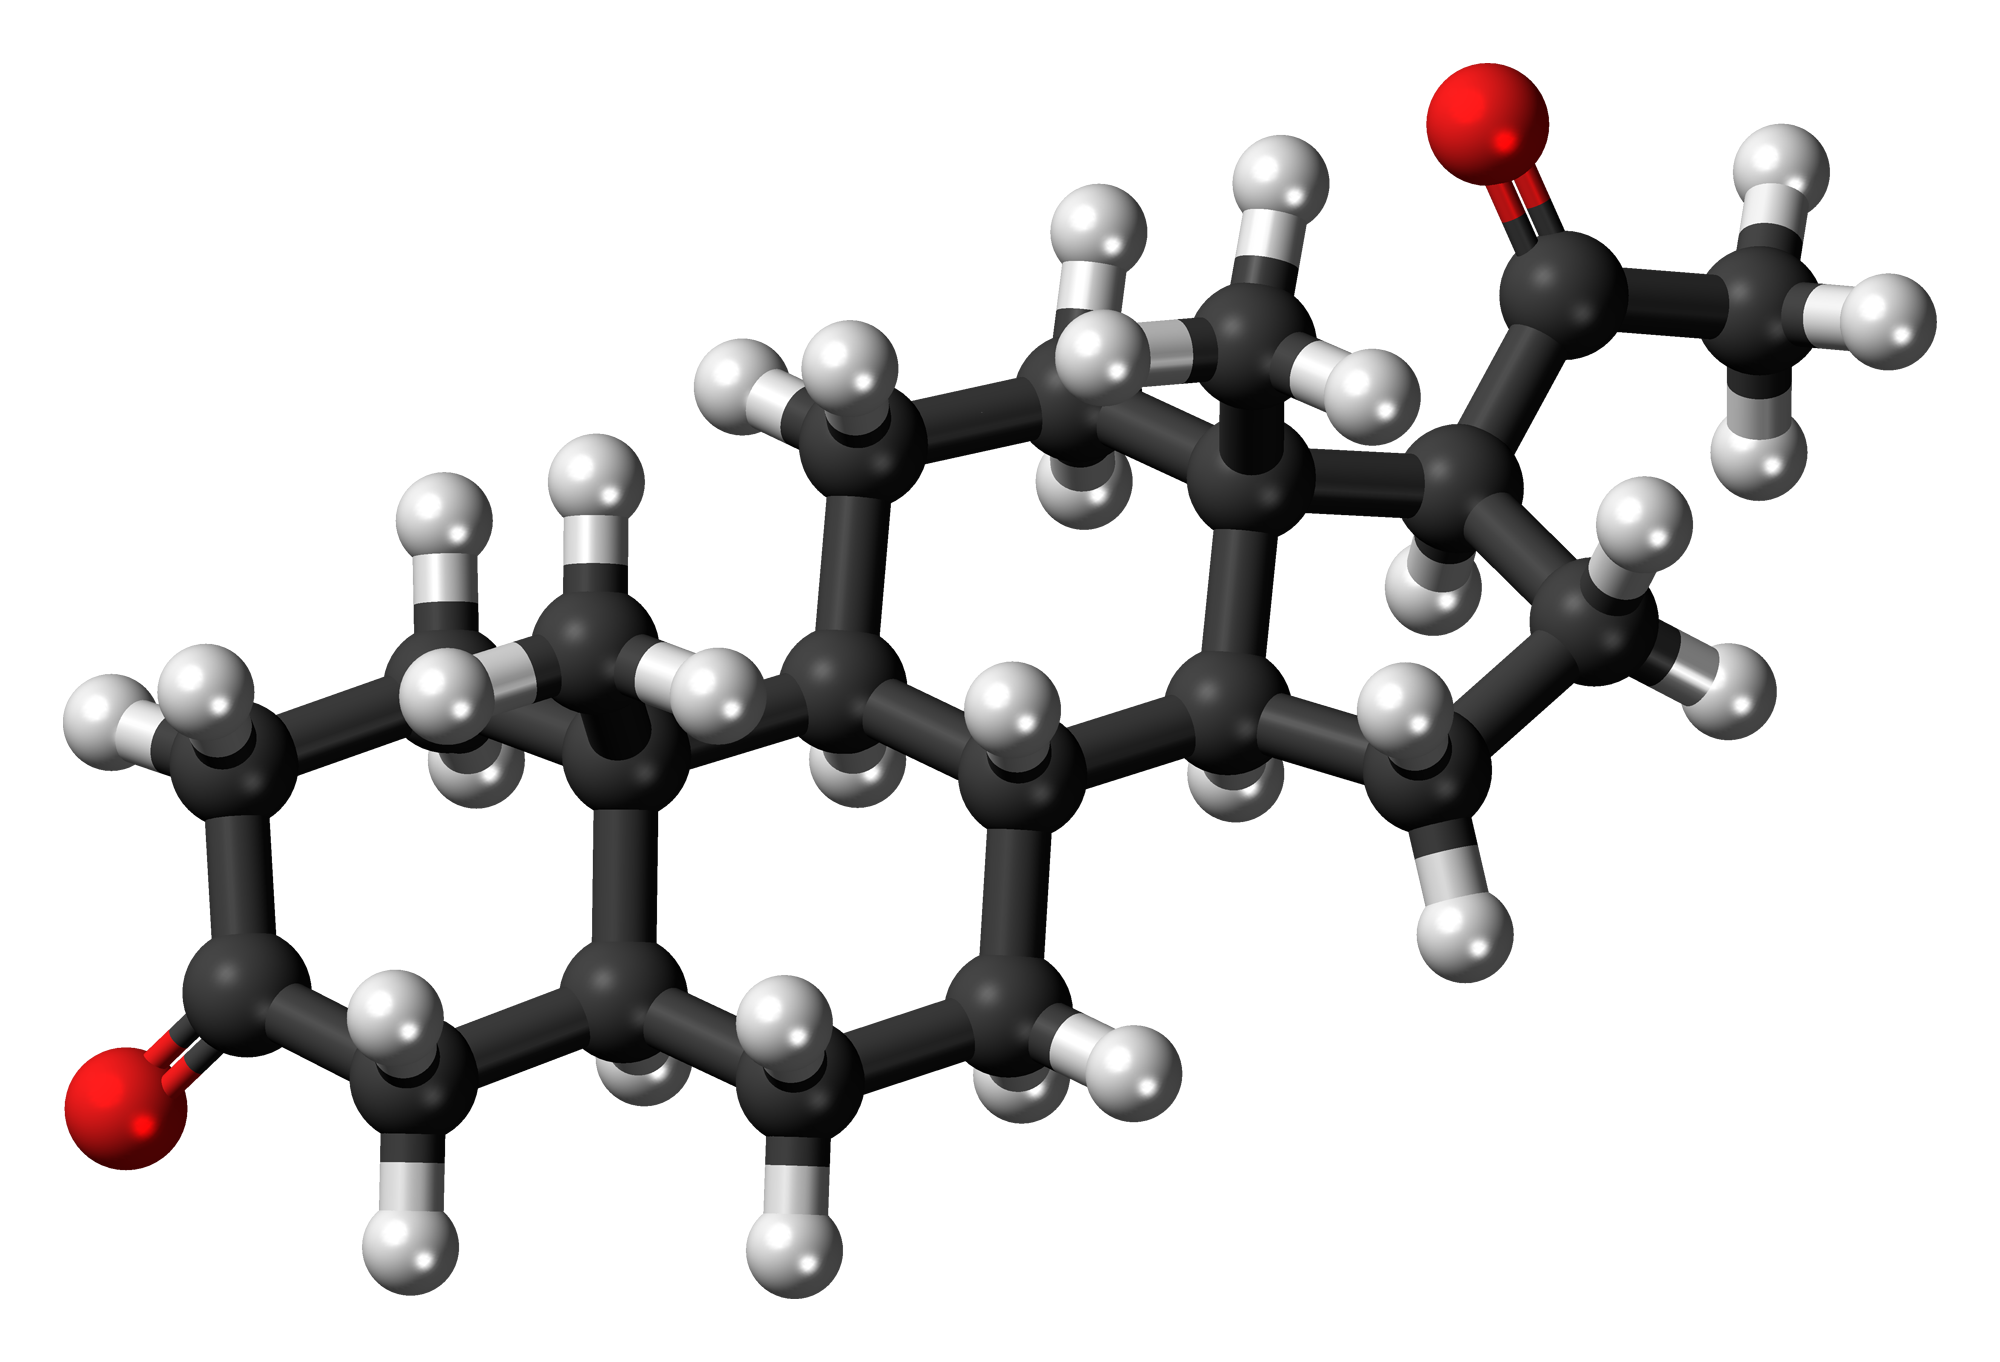 Image shows a ball and stick diagram of the steroid progesterone. Progesterone consists of four fused carbon rings.